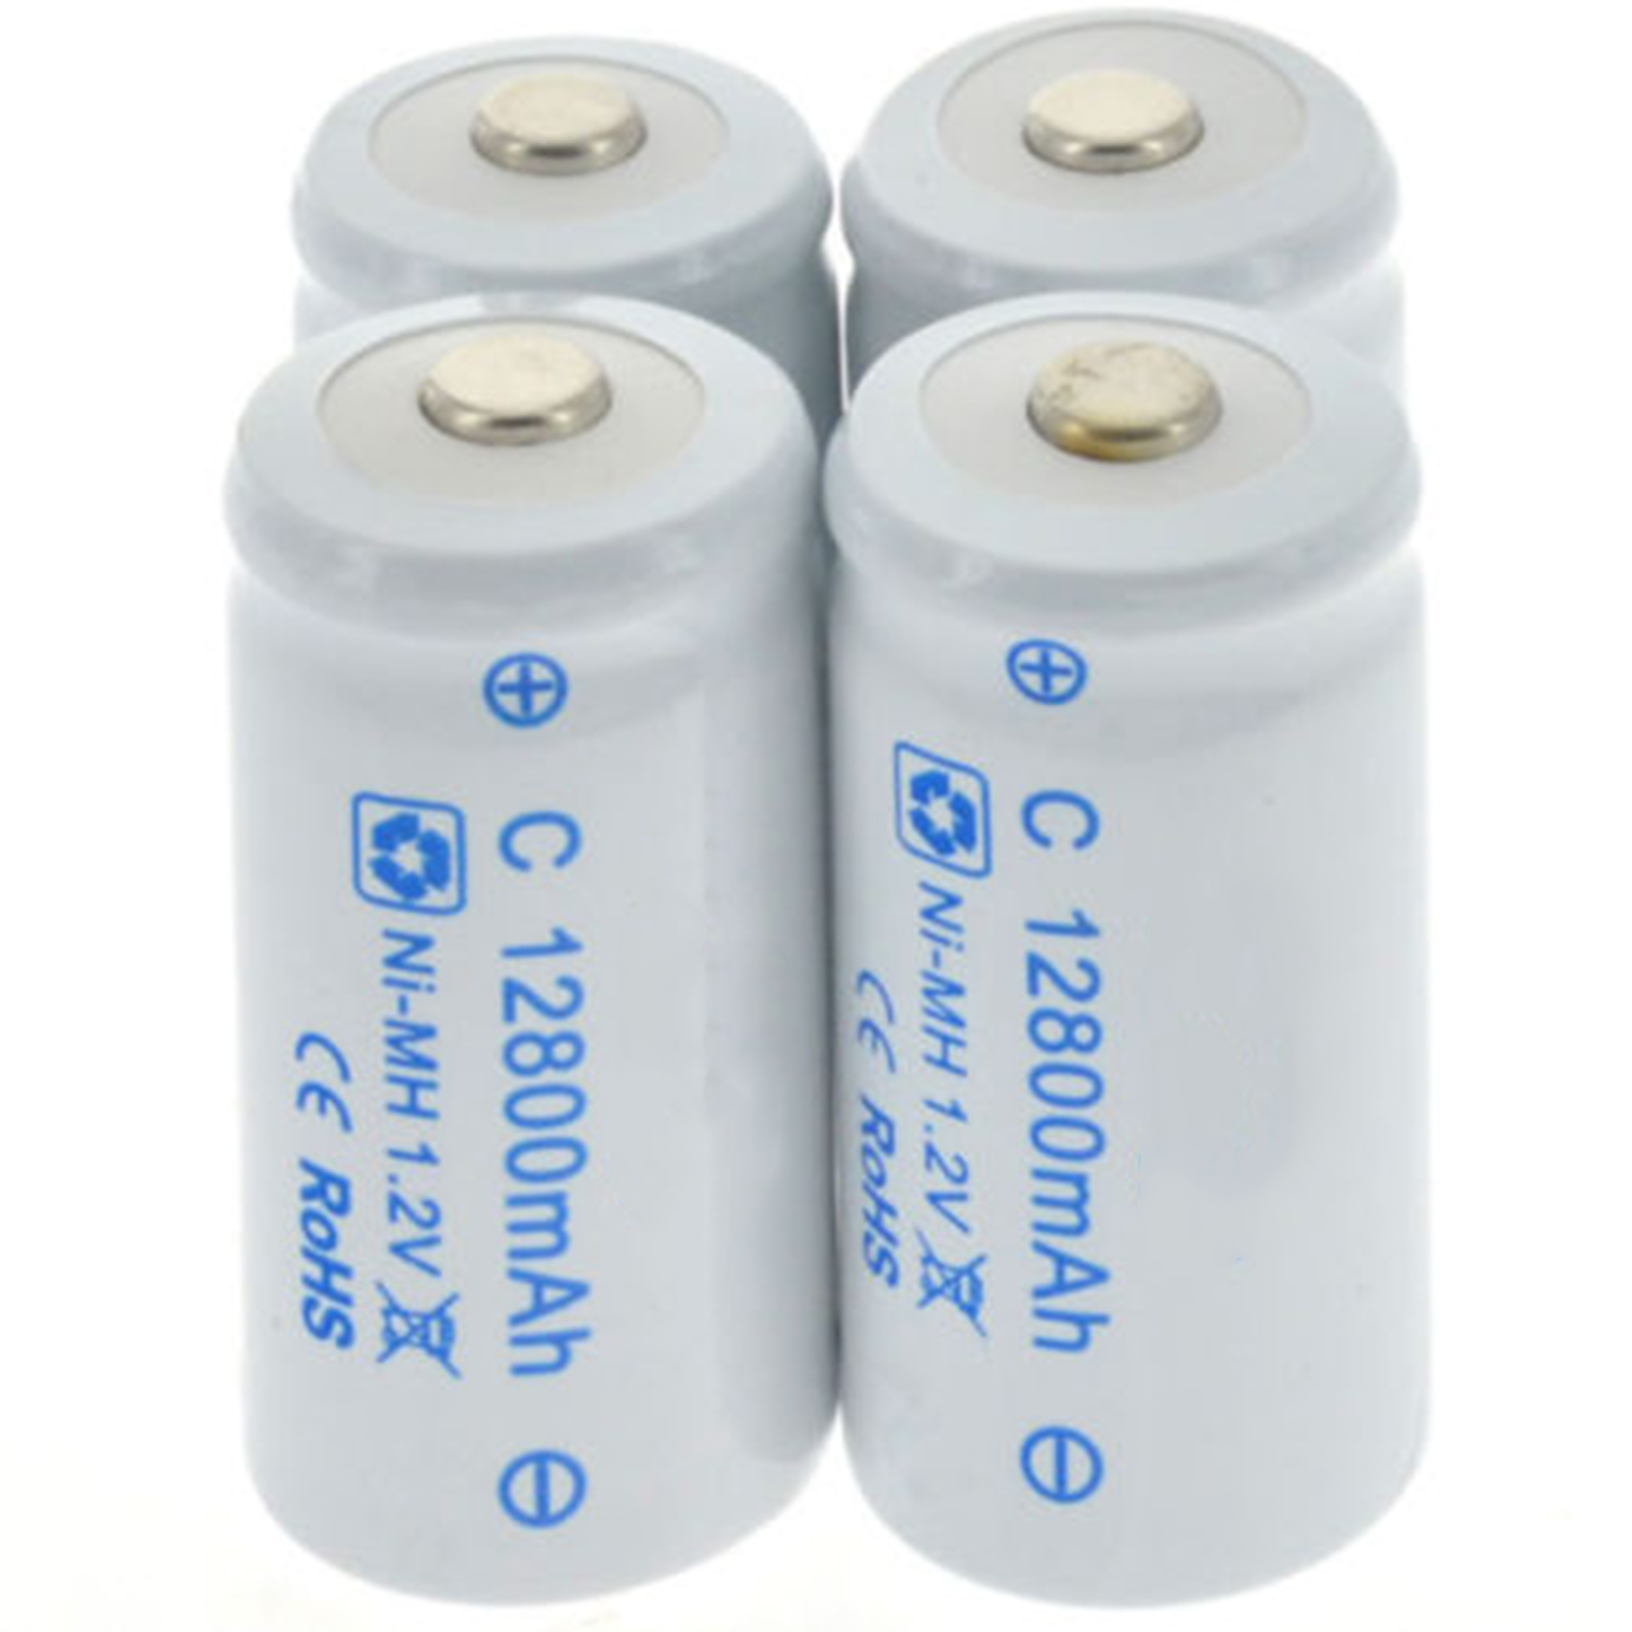 1-20pcs 12800mAh C Size Rechargeable Batteries 1.2V R14 C Cell NI-MH Battery